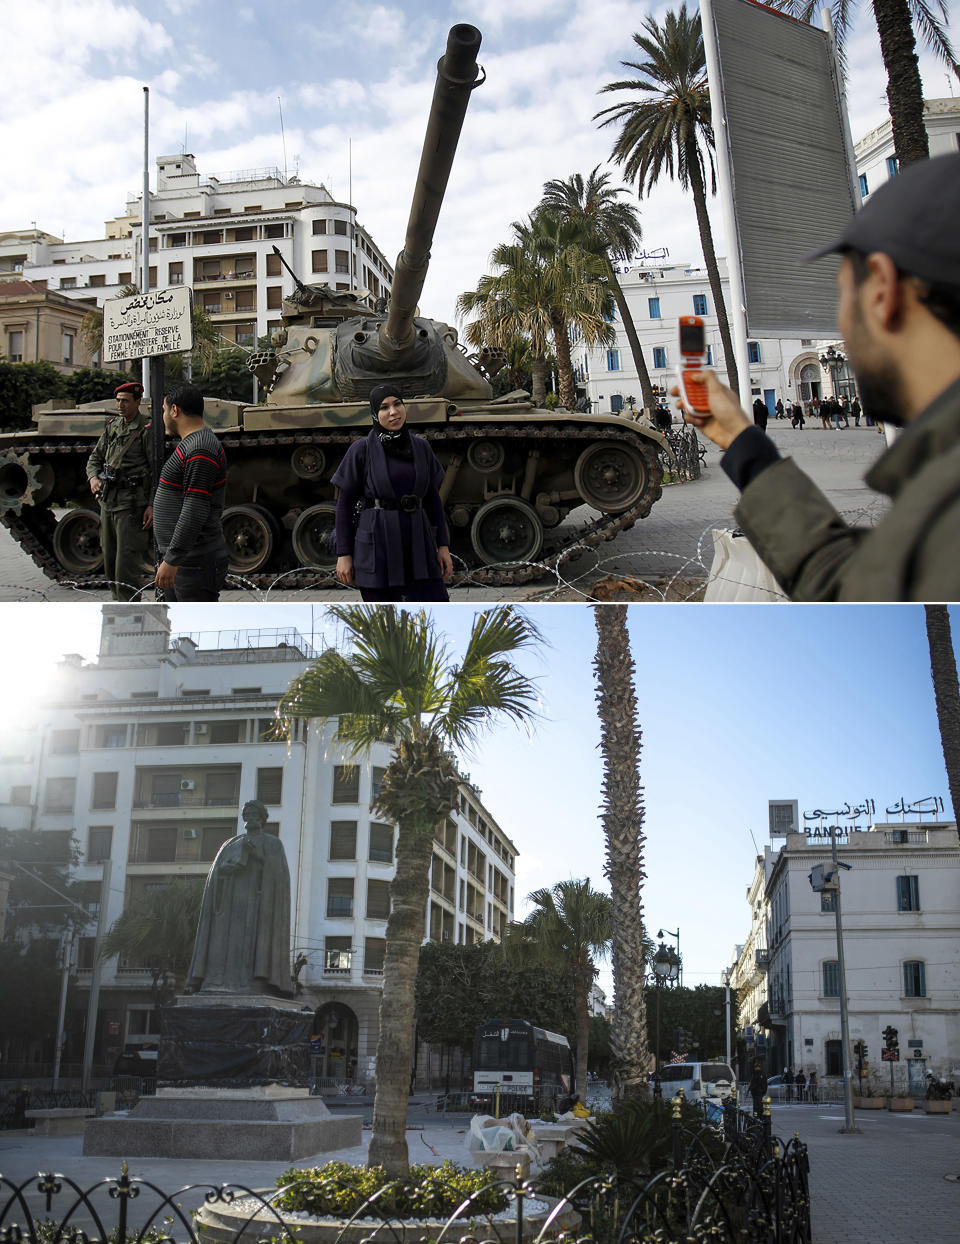 A combo image showing a woman posing next to a tank in central Tunis, Friday, Jan. 21 2011, top, and an empty street near Tunis' landmark Avenue Habib Bourgiba, on the tenth anniversary of the uprising, due to a national lockdown after a surge in Covid-19 cases, in Tunis, Thursday, Jan. 14, 2021. Tunisia is commemorating the 10th anniversary since the flight into exile of its iron-fisted leader, Zine El Abidine Ben Ali, pushed from power in a popular revolt that foreshadowed the so-called Arab Spring. But there will be no festive celebrations Thursday marking the revolution in this North African nation, ordered into lockdown to contain the coronavirus. (AP Photo/Christophe Ena, Mosa'ab Elshamy)